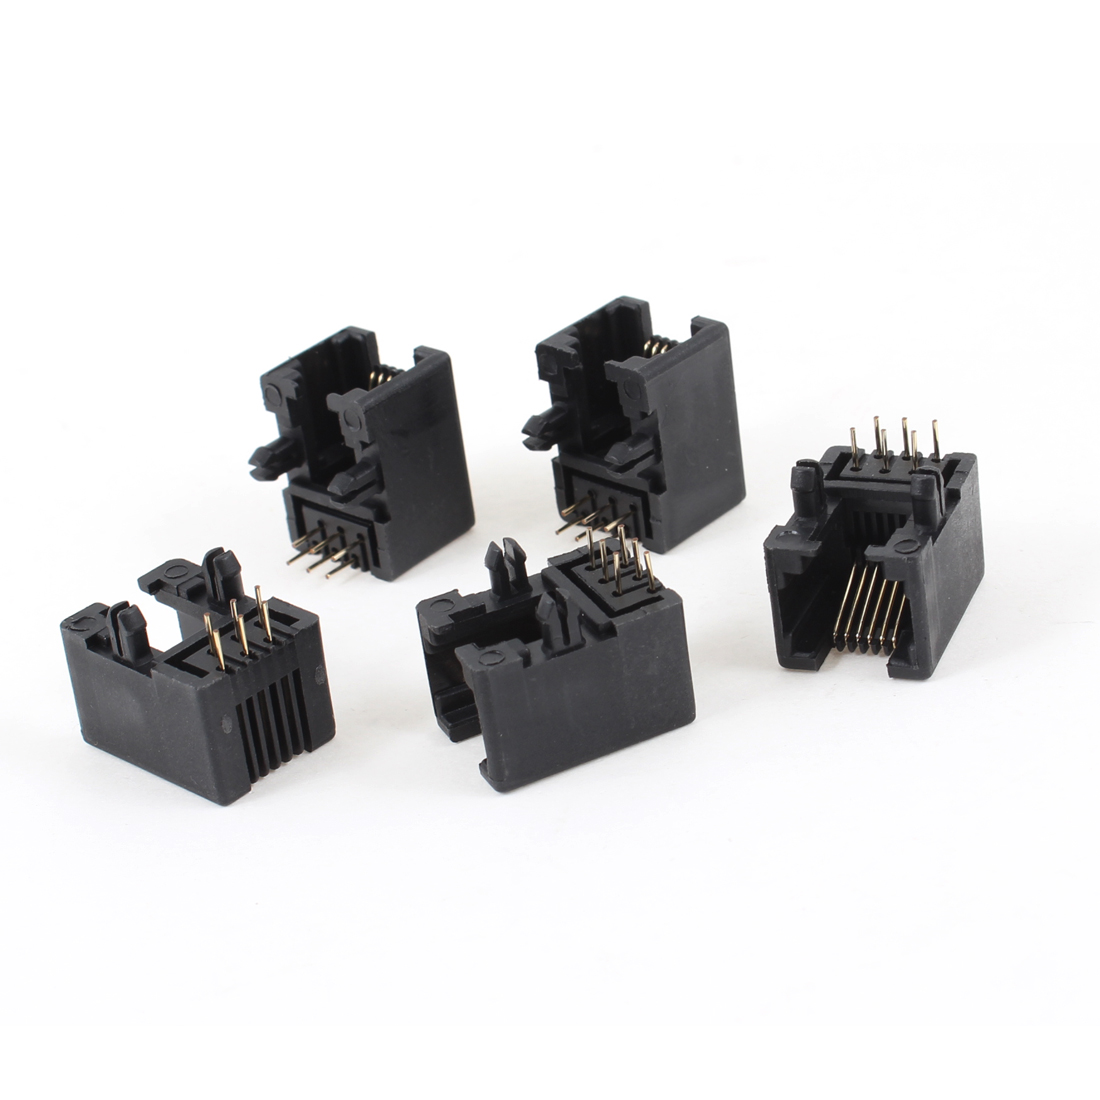 5 Pcs Black Plastic RJ12 6P6C Right Angle Network Modular PCB Connector Jacks